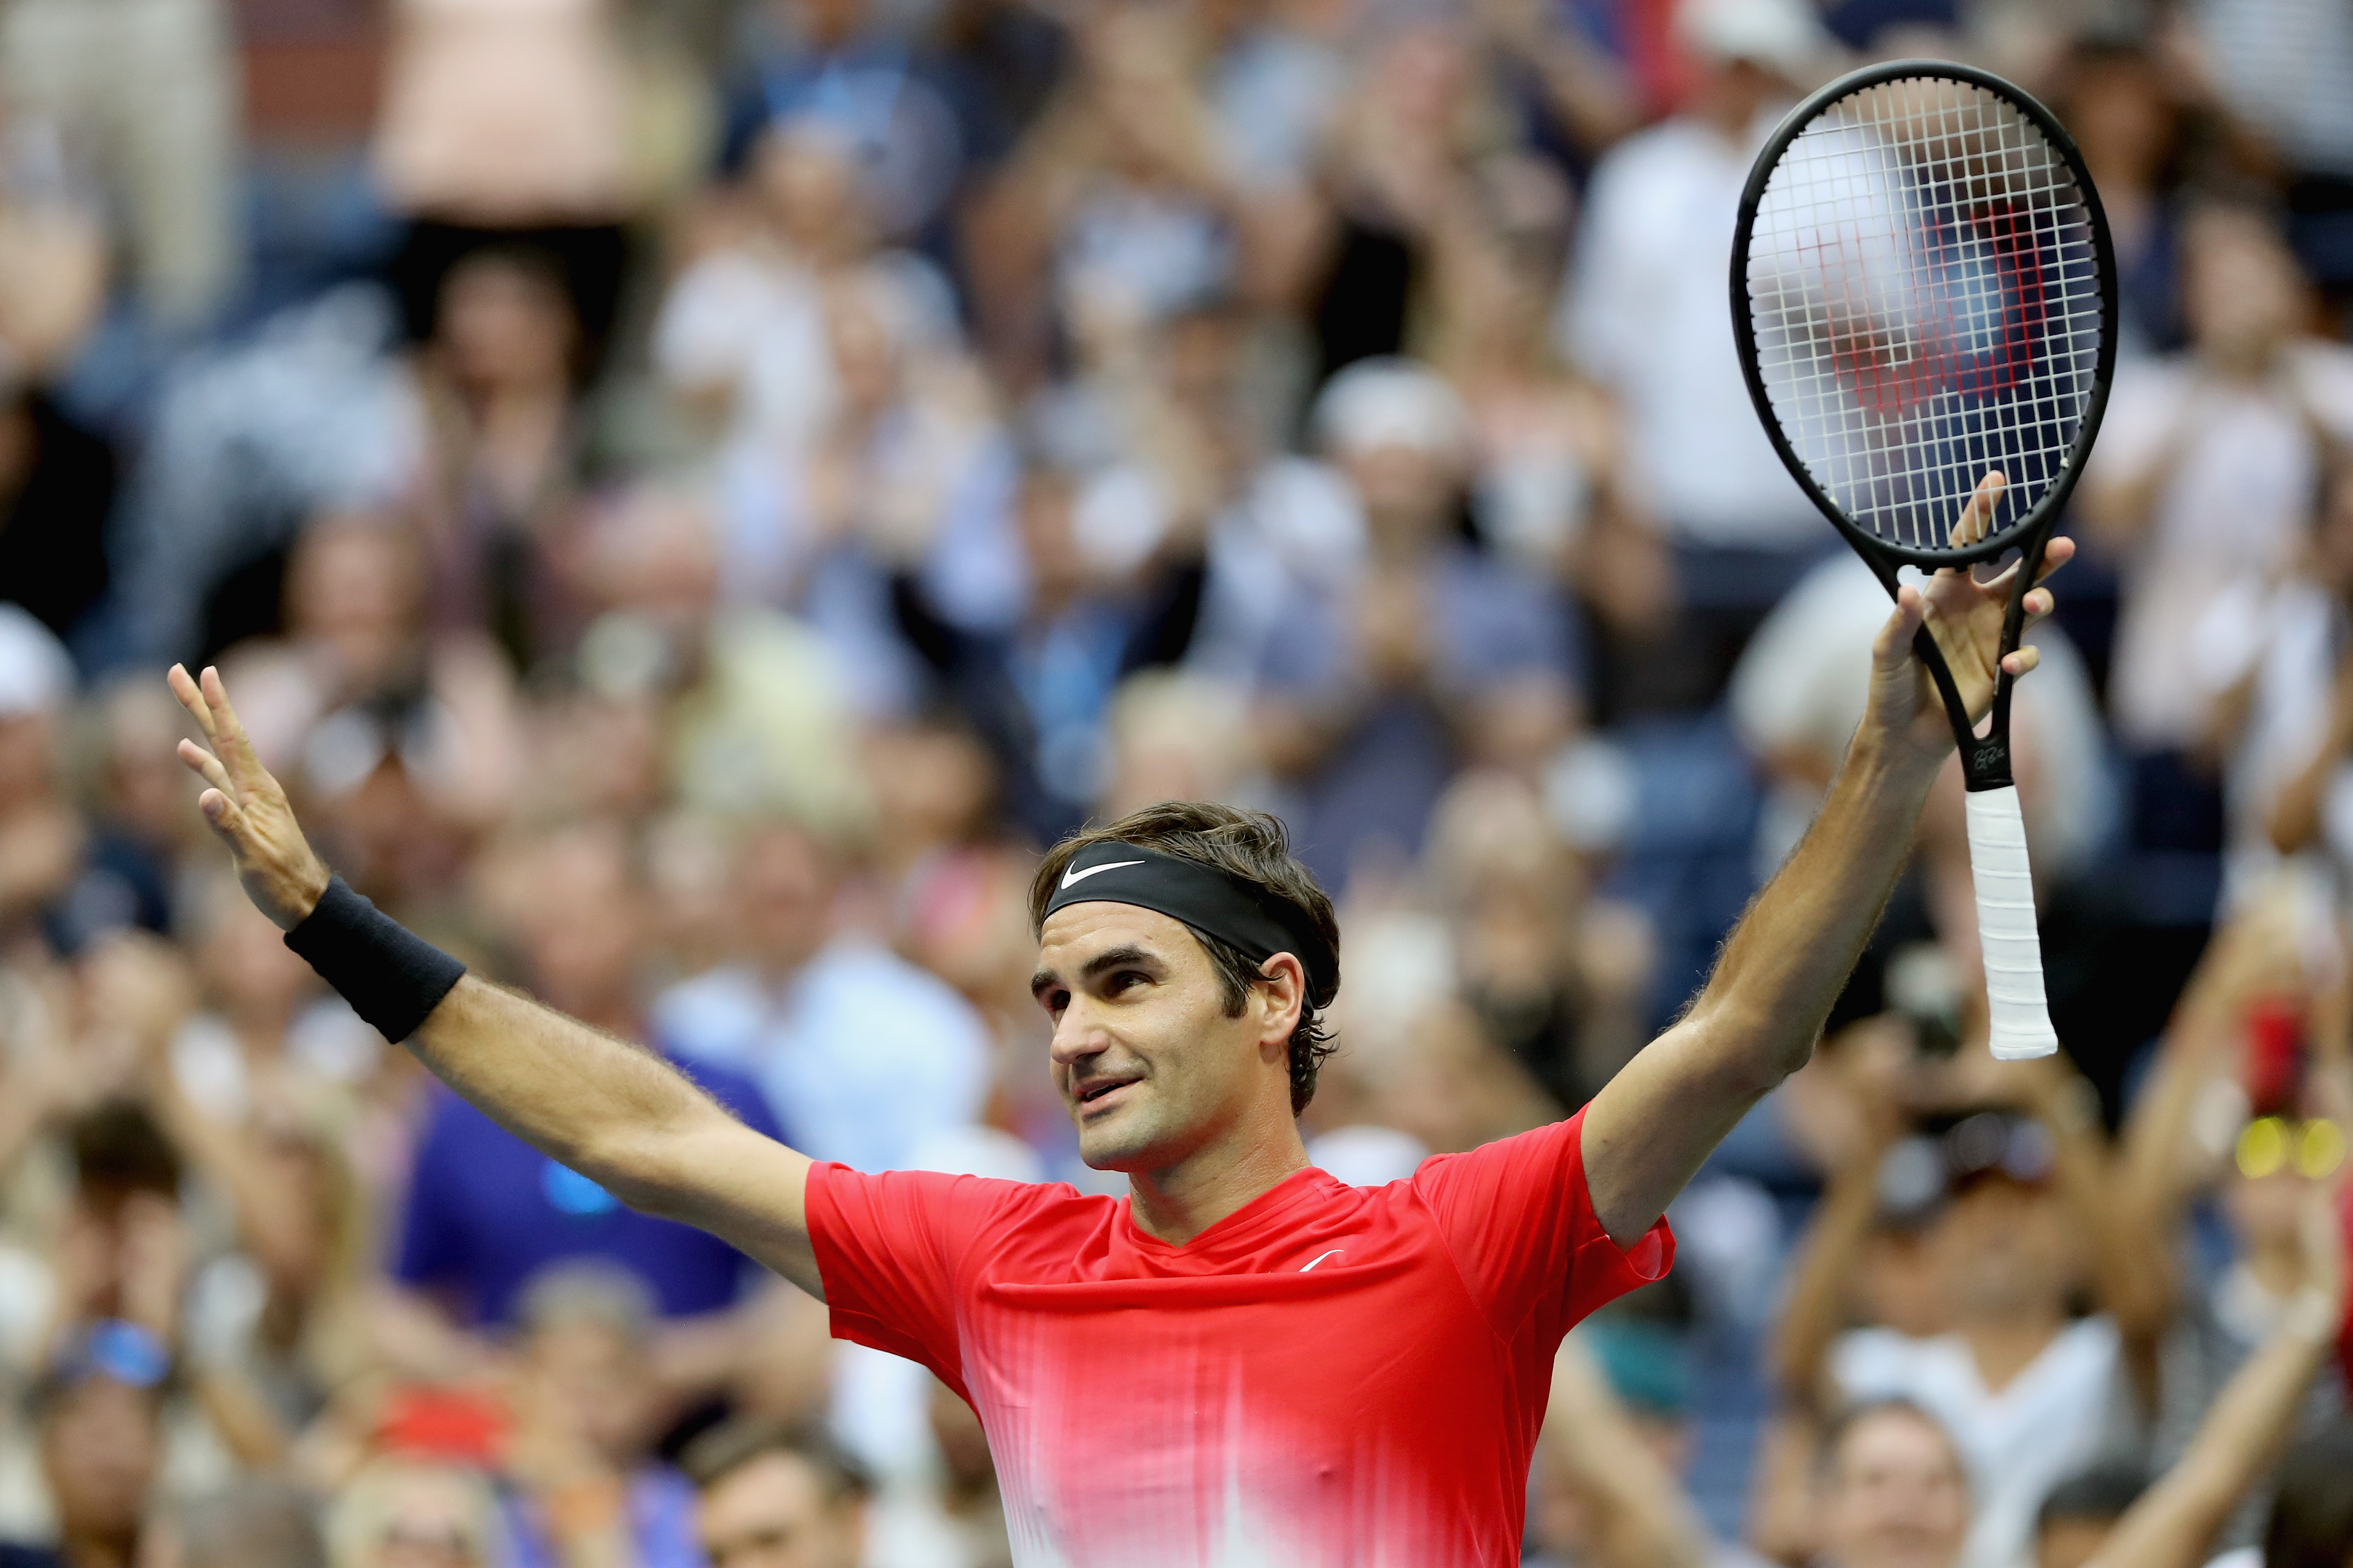 Roger Federer of Switzerland celebrates defeating Mikhail Youzhny of Russia during their second round Men's Singles match on Day Four of the 2017 US Open at the USTA Billie Jean King National Tennis Center.